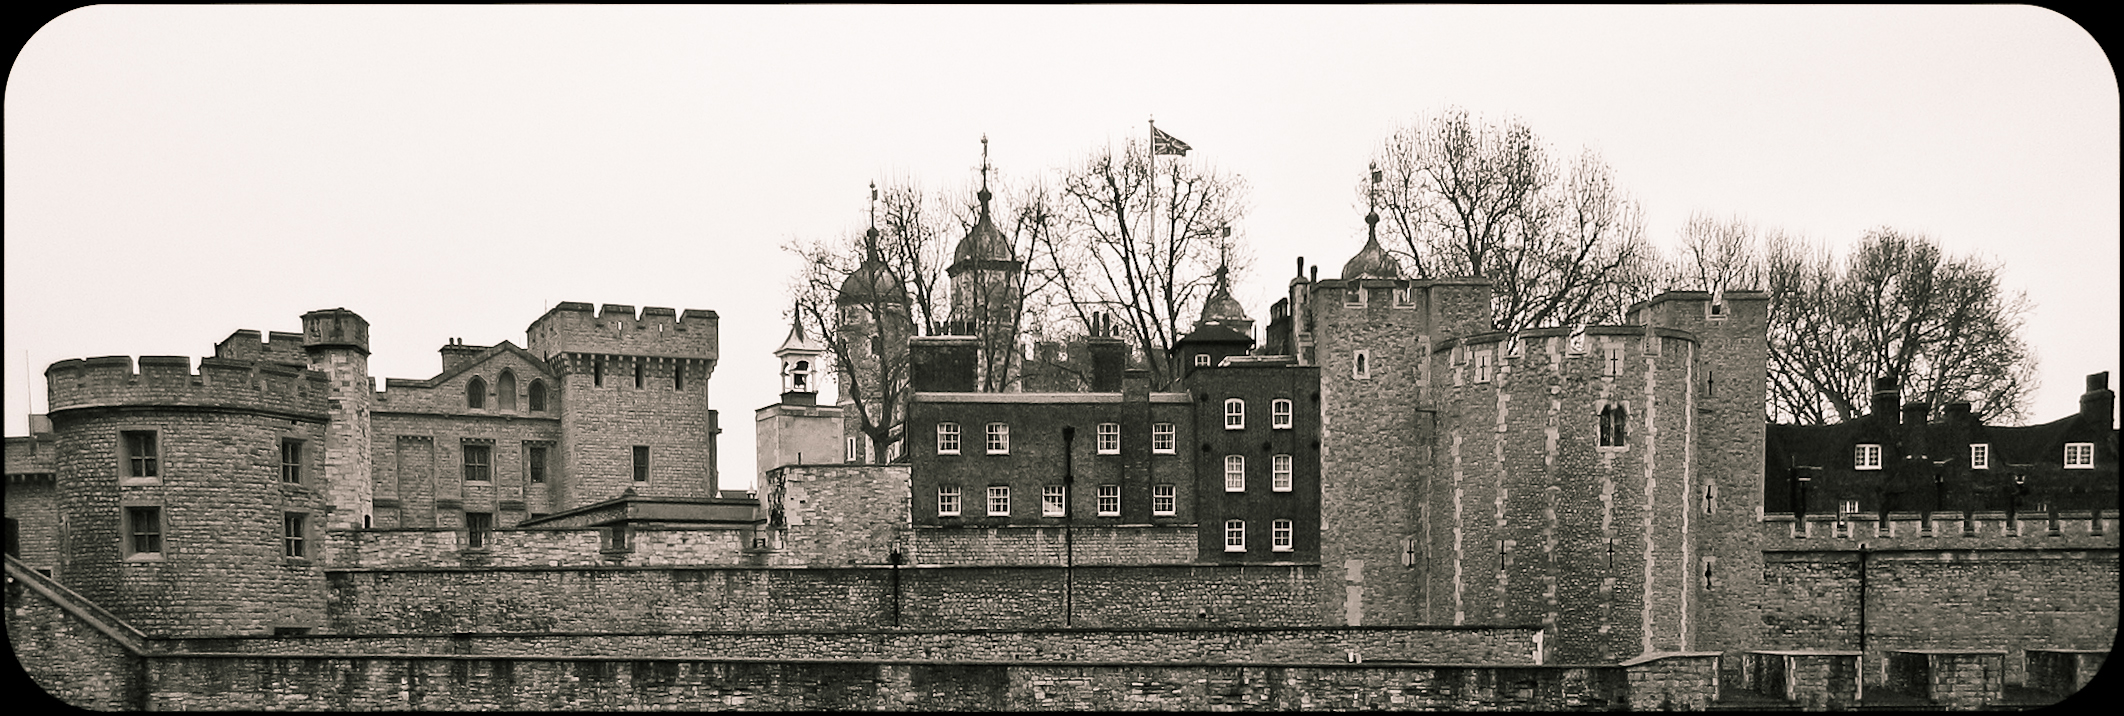 Tower of London 2003